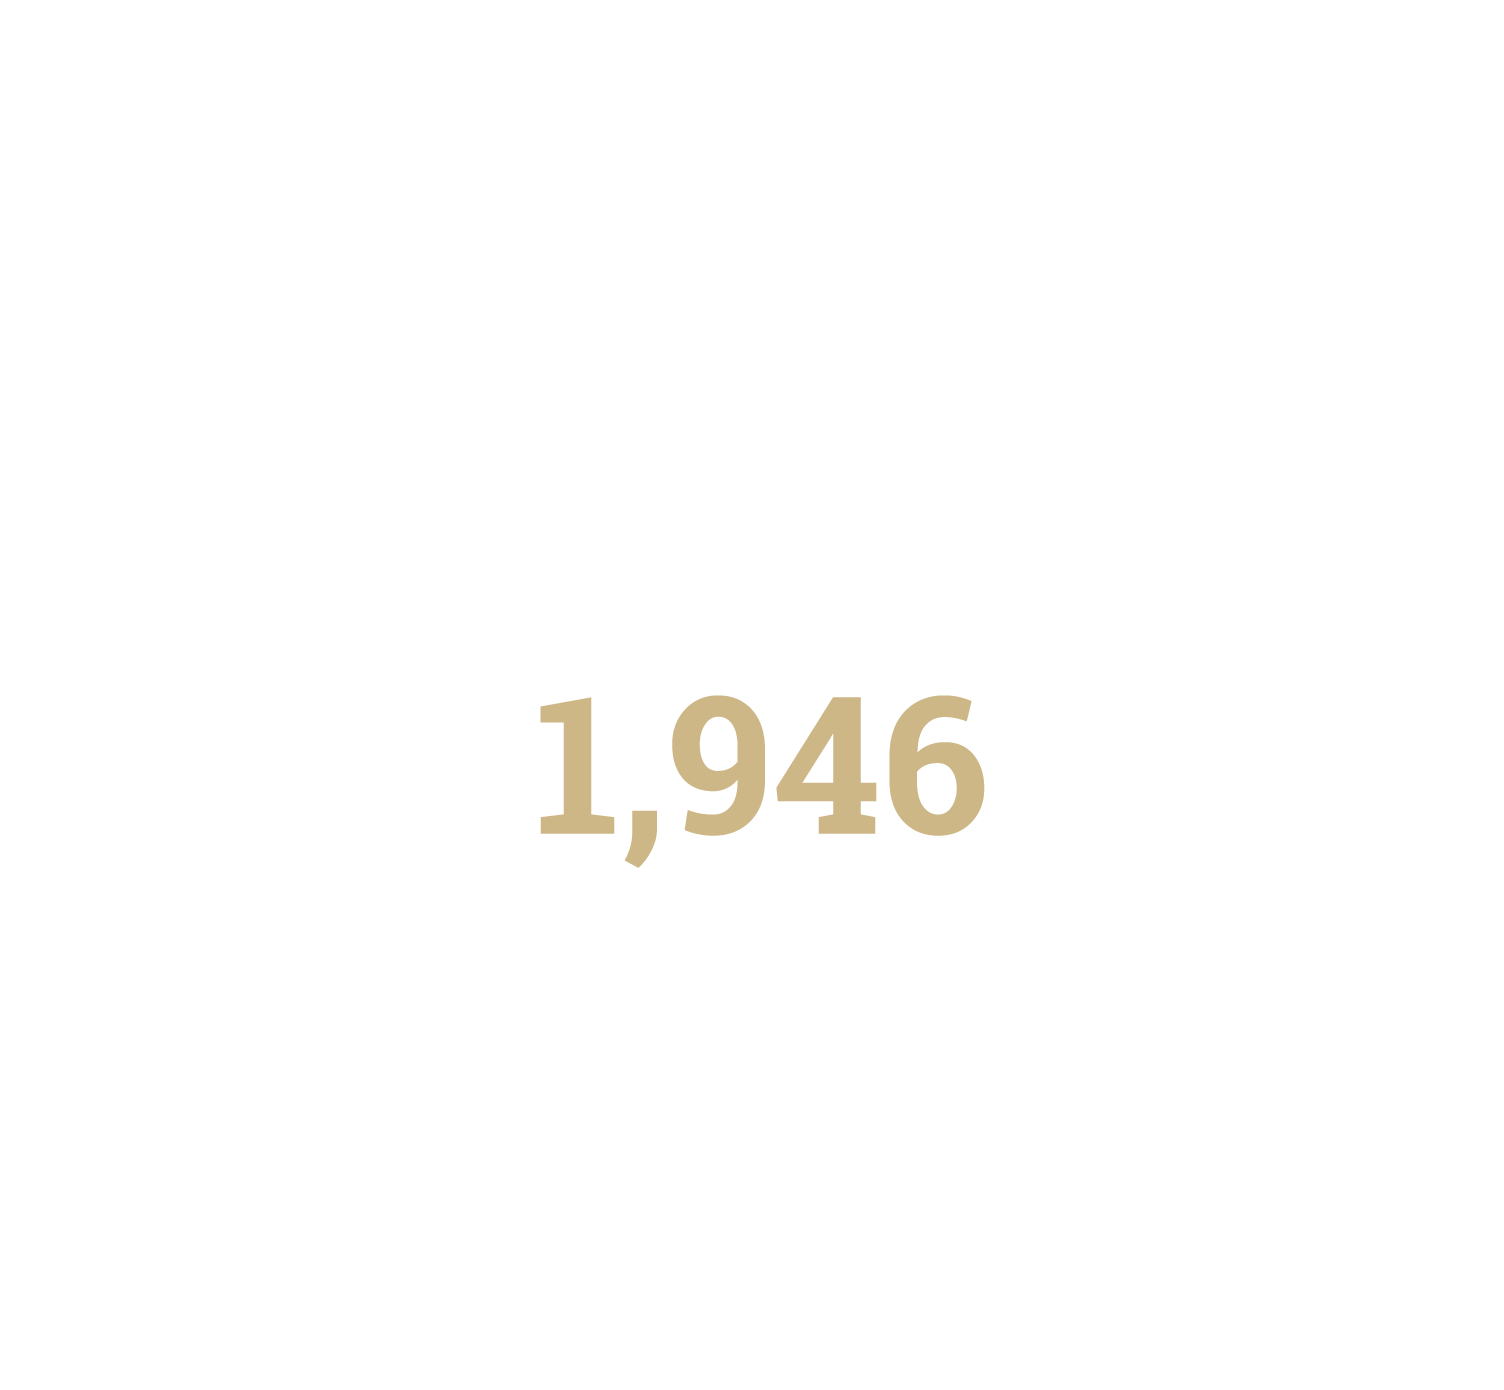 infographic of total endowed funds